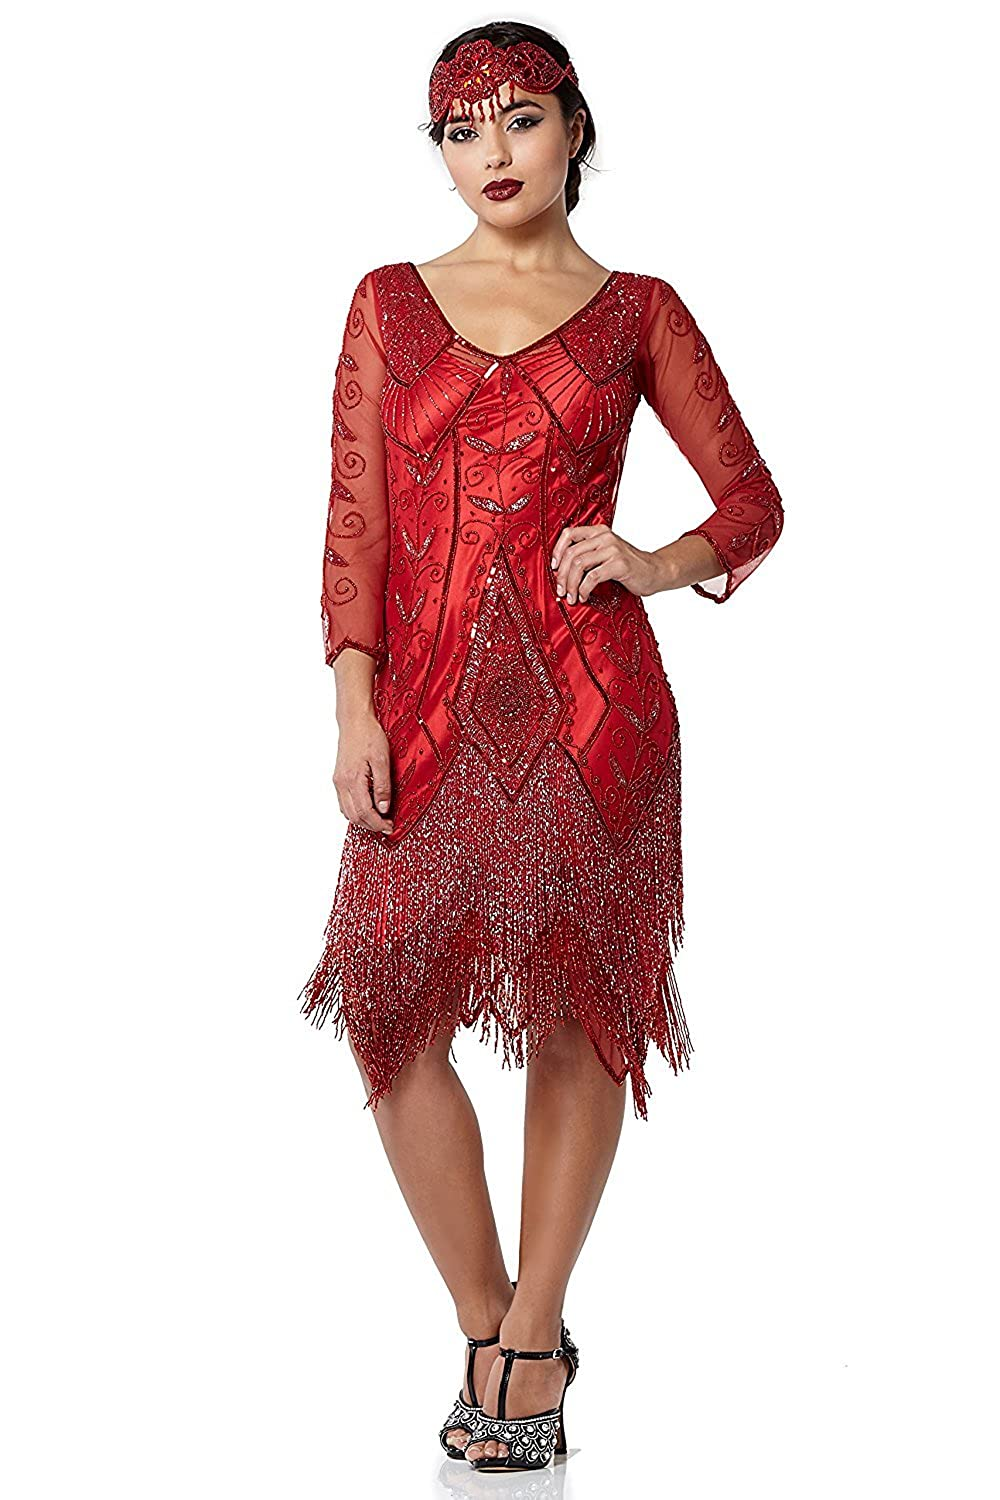 1920s Style Dresses, Flapper Dresses Scarlet Vintage Inspired Fringe Flapper Dress in Red £165.00 AT vintagedancer.com